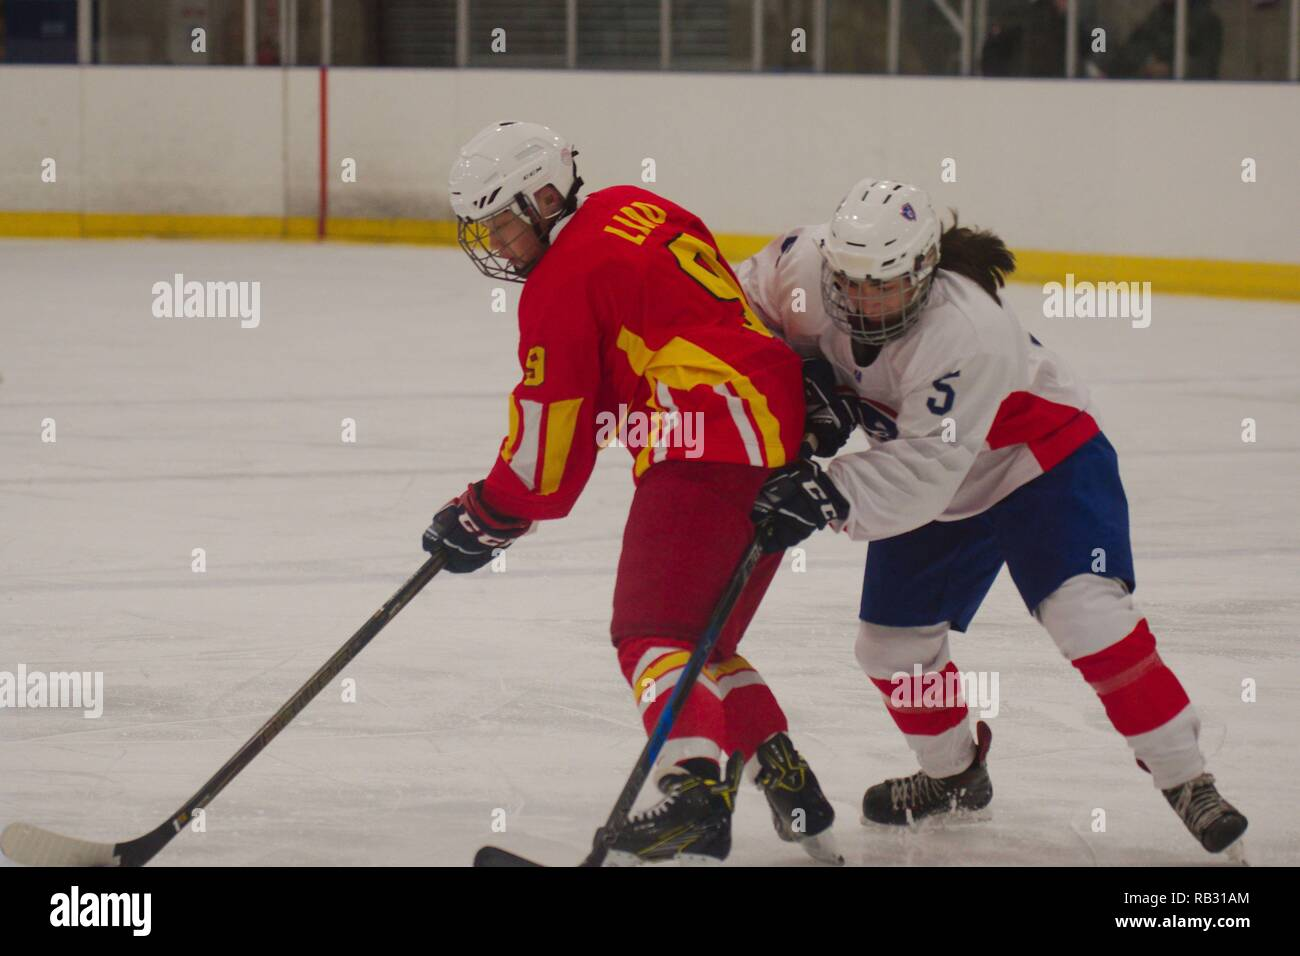 Dumfries, UK. 6 January 2019. Zifei Liao of China and Eloise Jure of France battling for the puck during their match in the 2019 Ice Hockey U18 Women's World Championship, Division 1, Group B at Dumfries Ice Bowl. Credit: Colin Edwards/Alamy Live News. - Stock Image